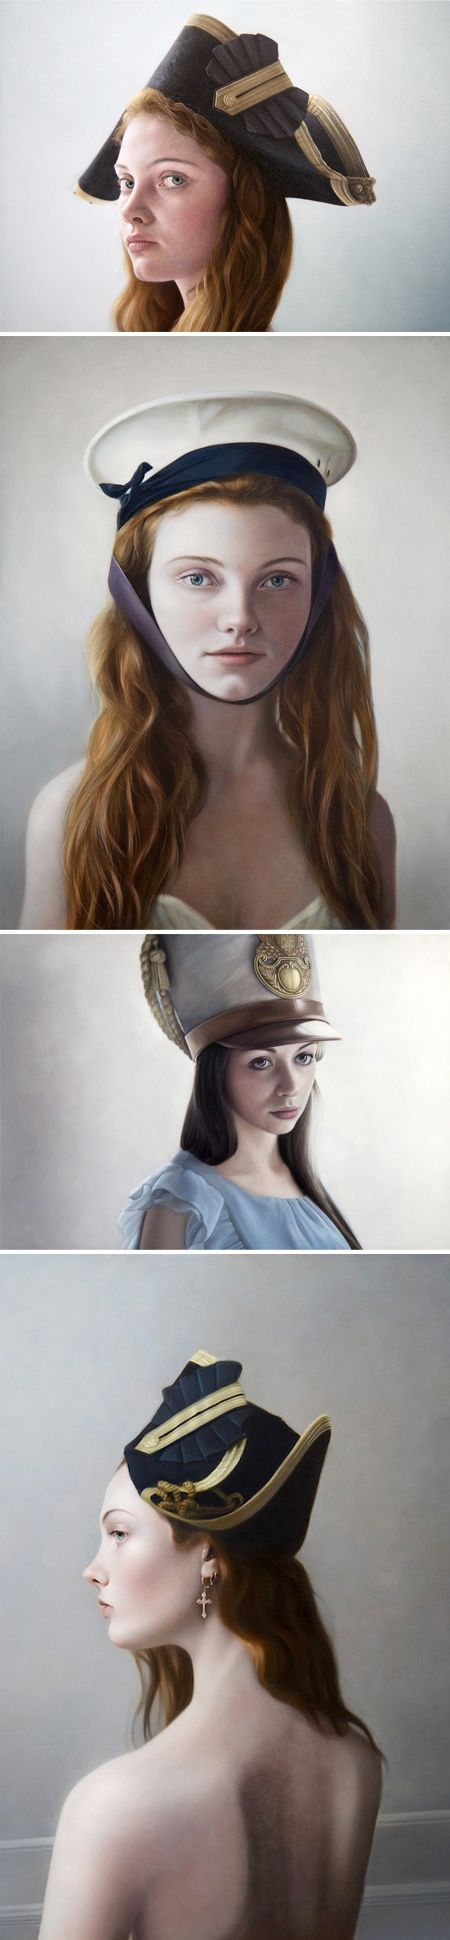 oil paintings by mary jane ansell <3